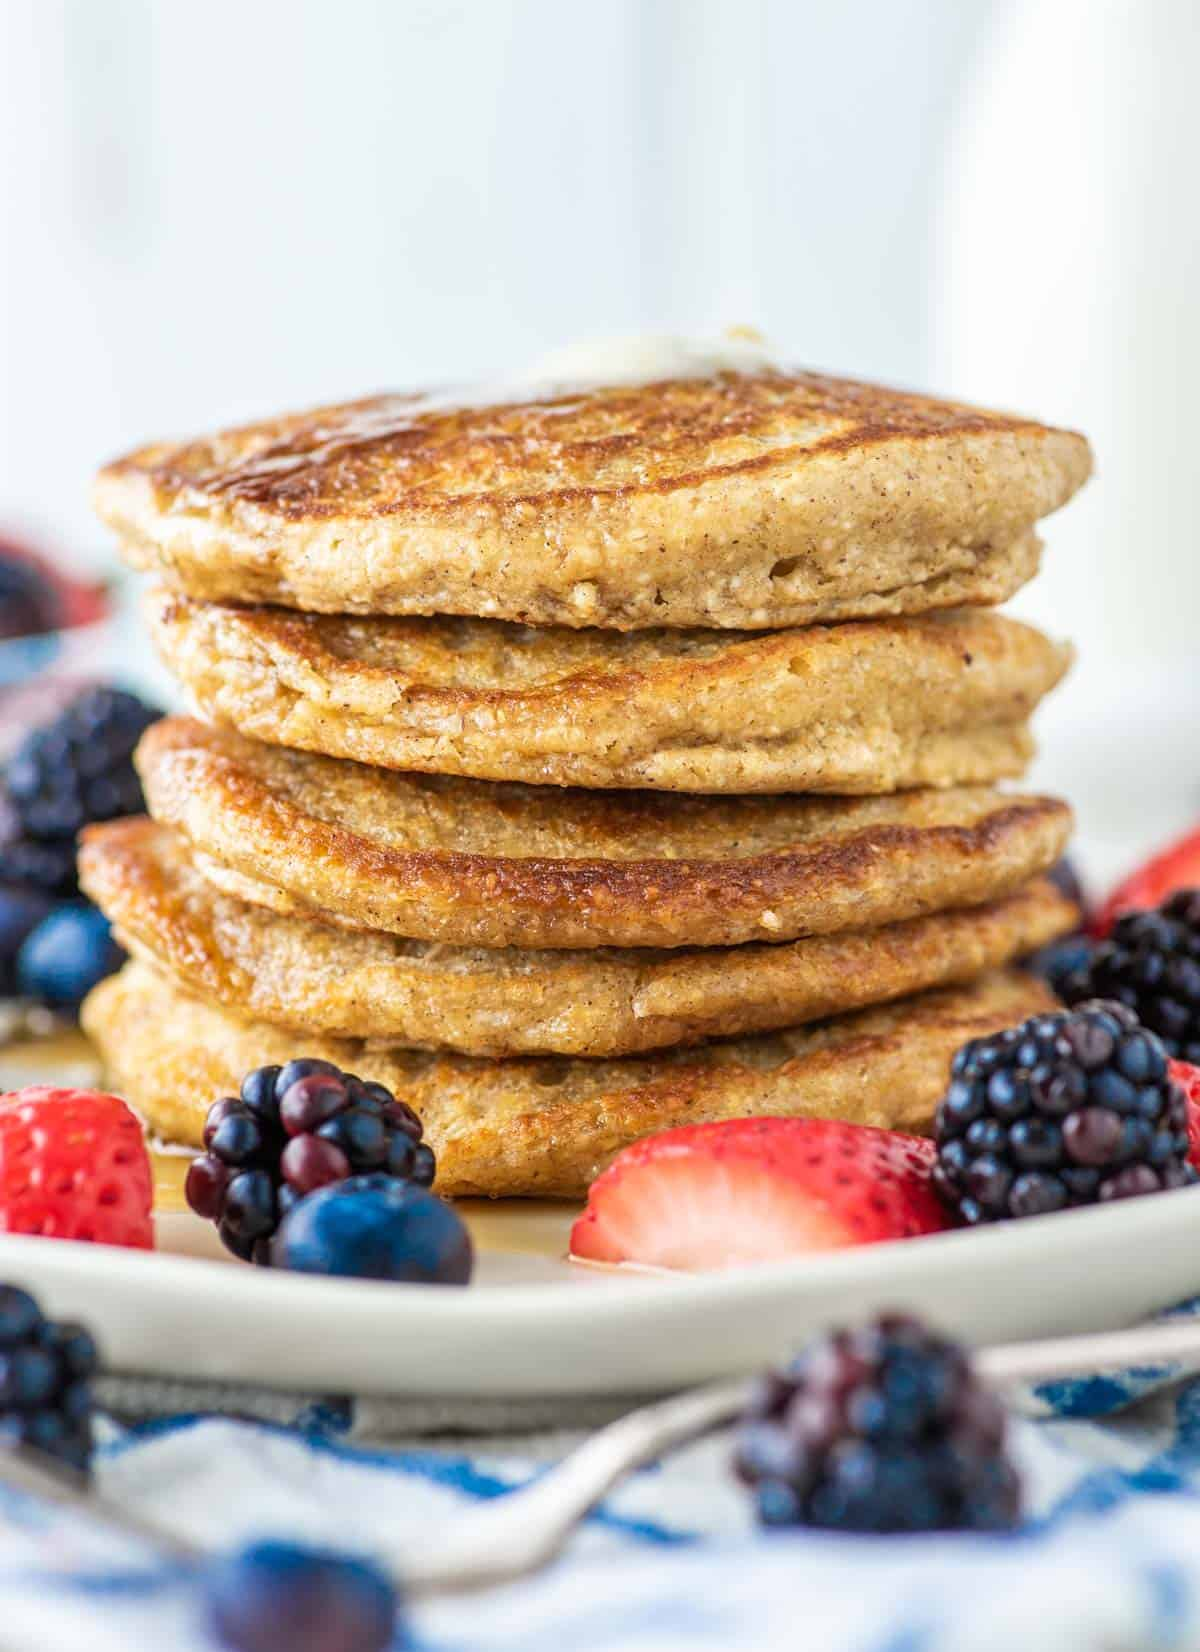 5 stacked oat flour pancakes on plate with fruit